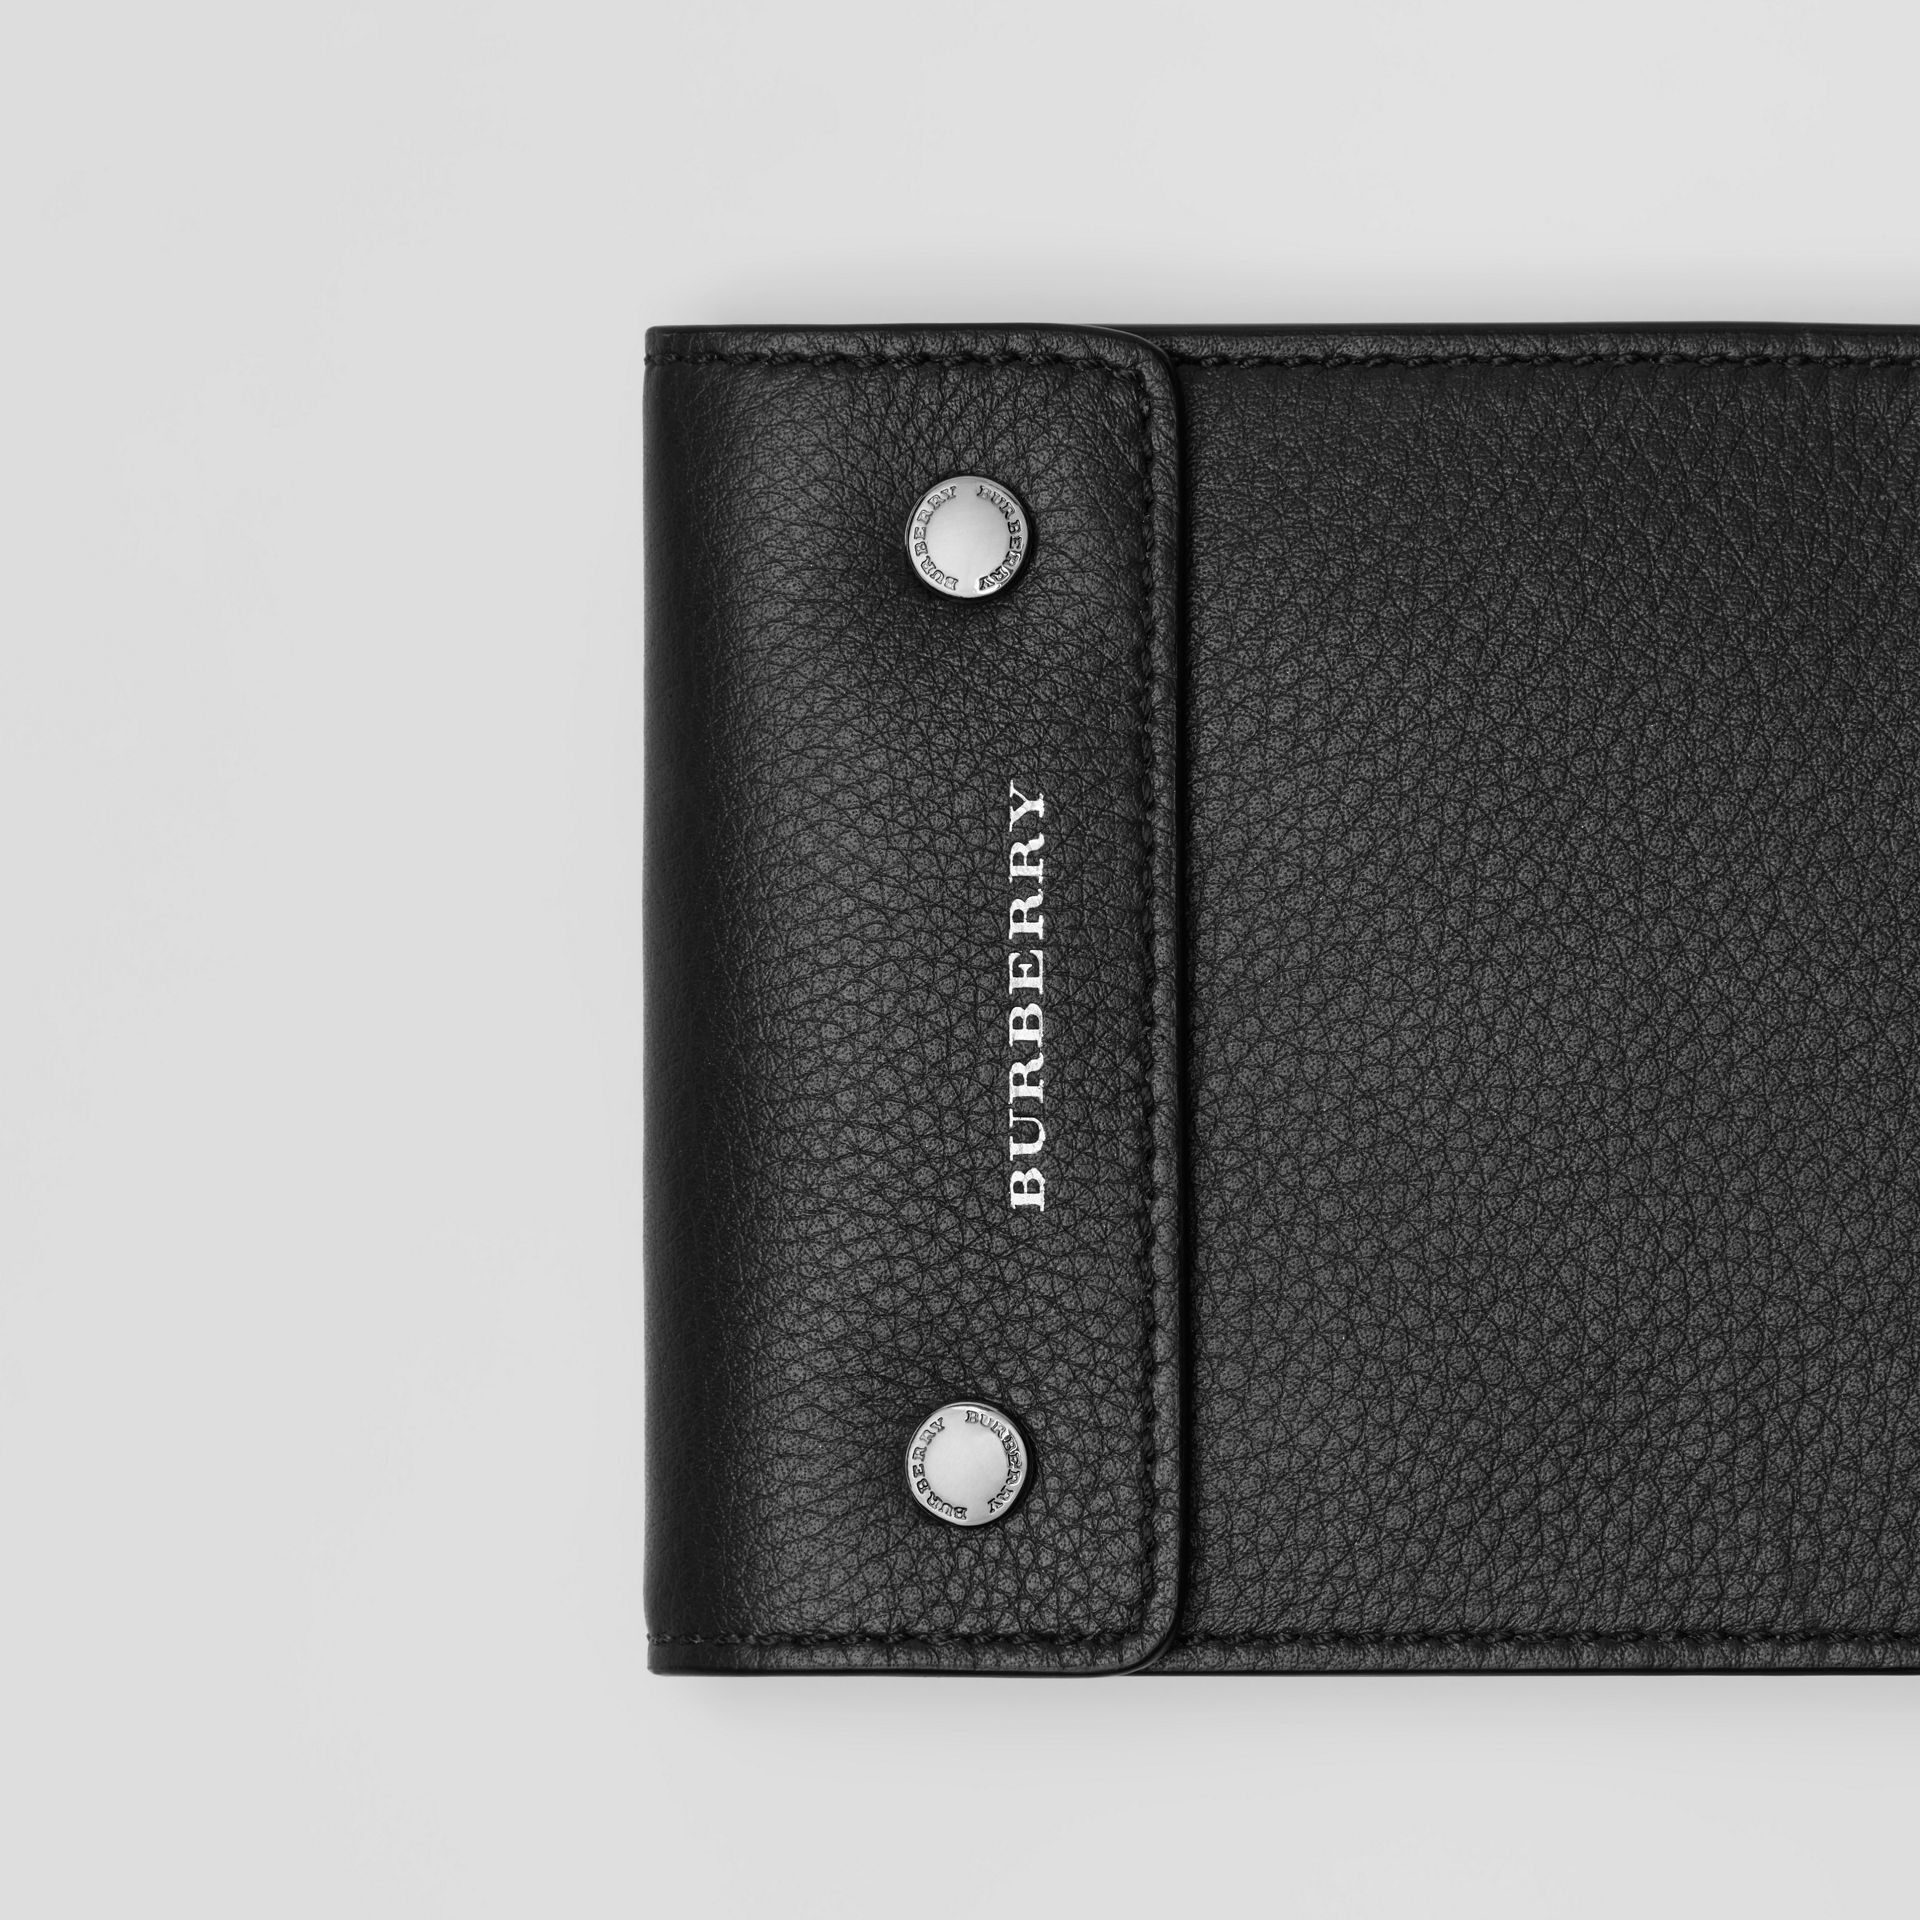 Press-stud Leather International Bifold Wallet in Black - Men | Burberry Hong Kong - gallery image 1